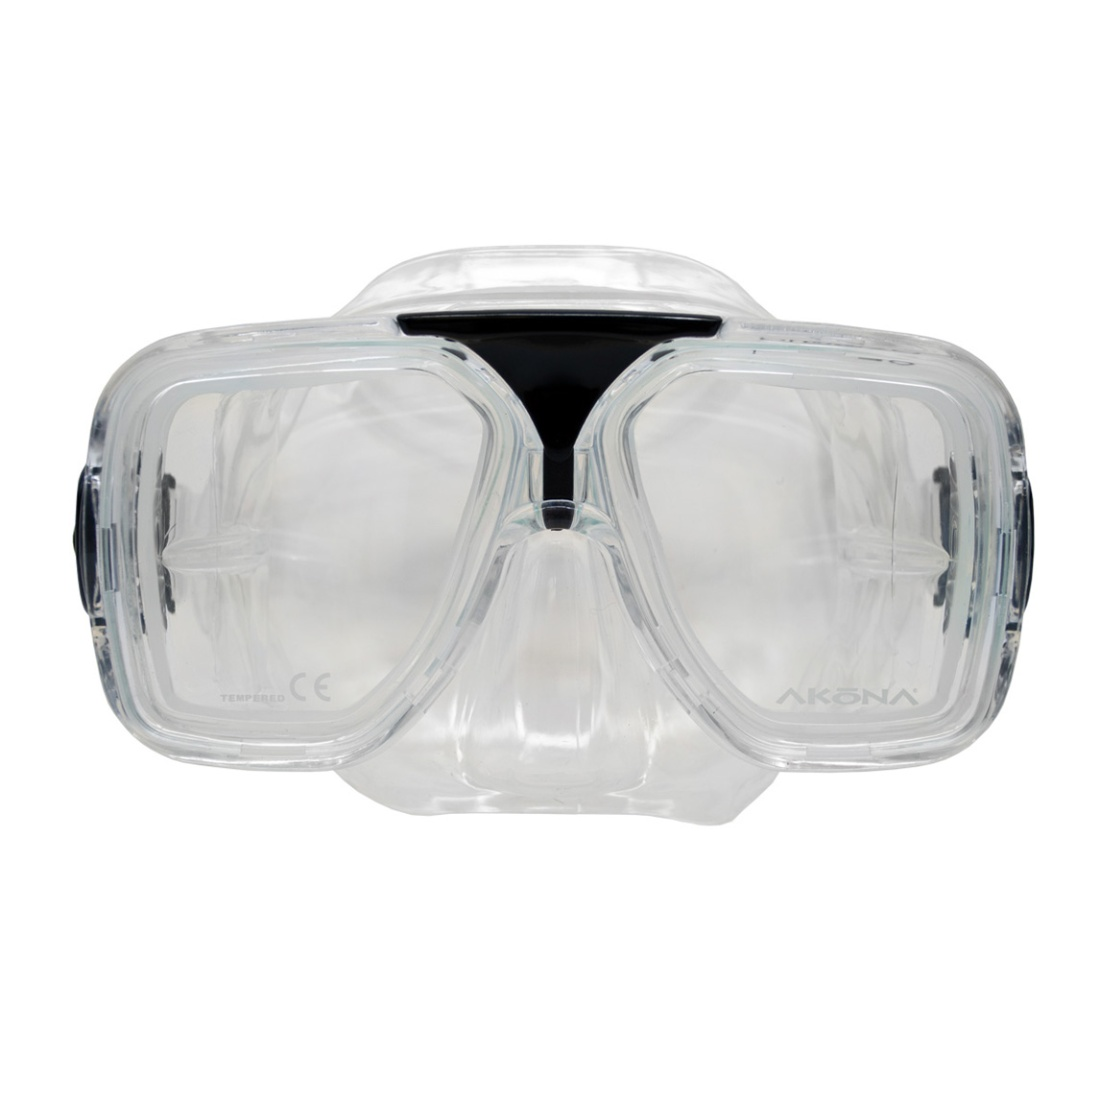 BREEZE MASK - AKM280 CL Front